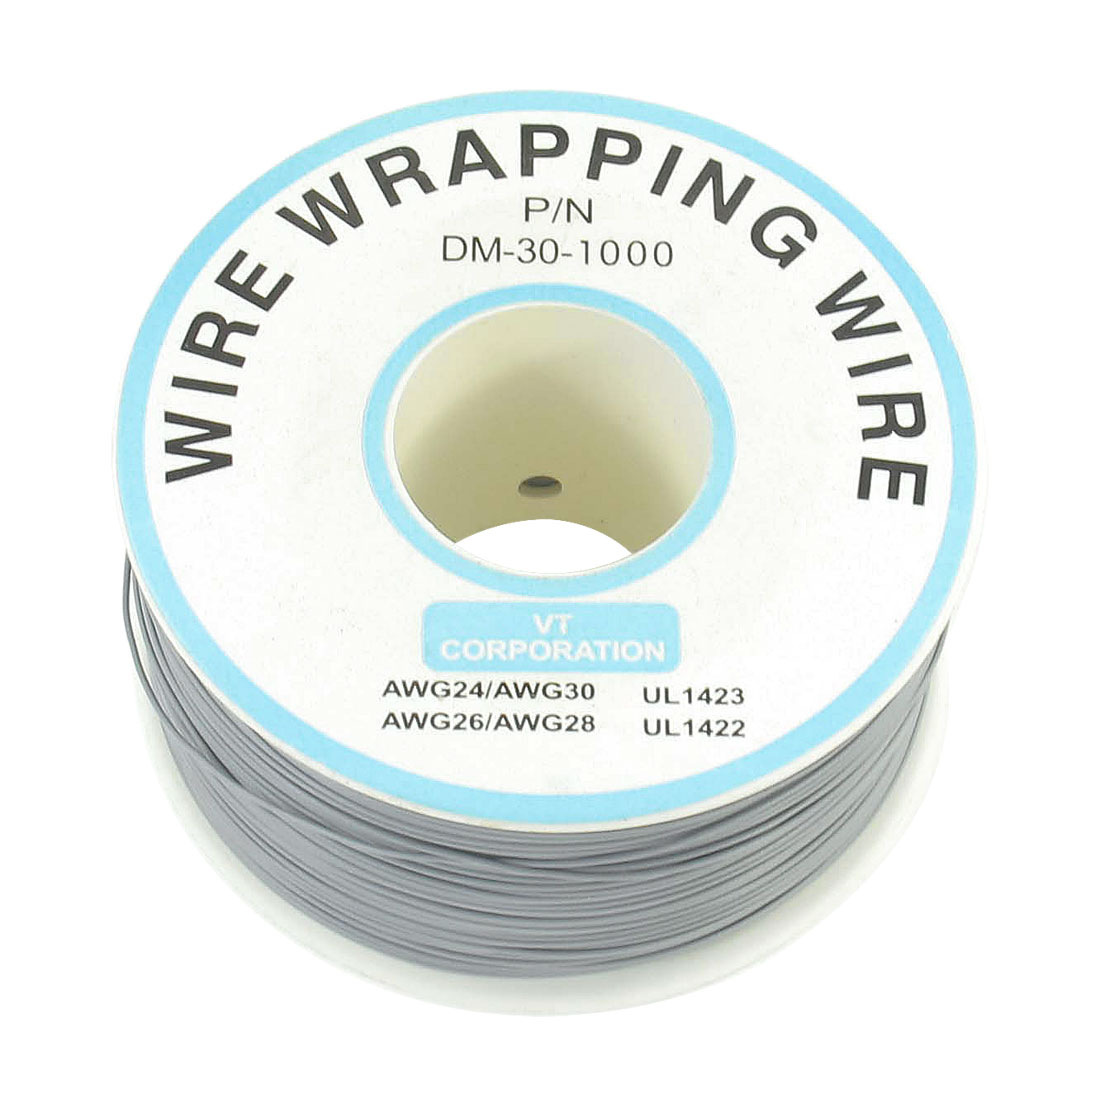 P/N DM-30-1000 Gray Insulated PVC Coated 30AWG Wire Wrapping Wires Reel 820Ft